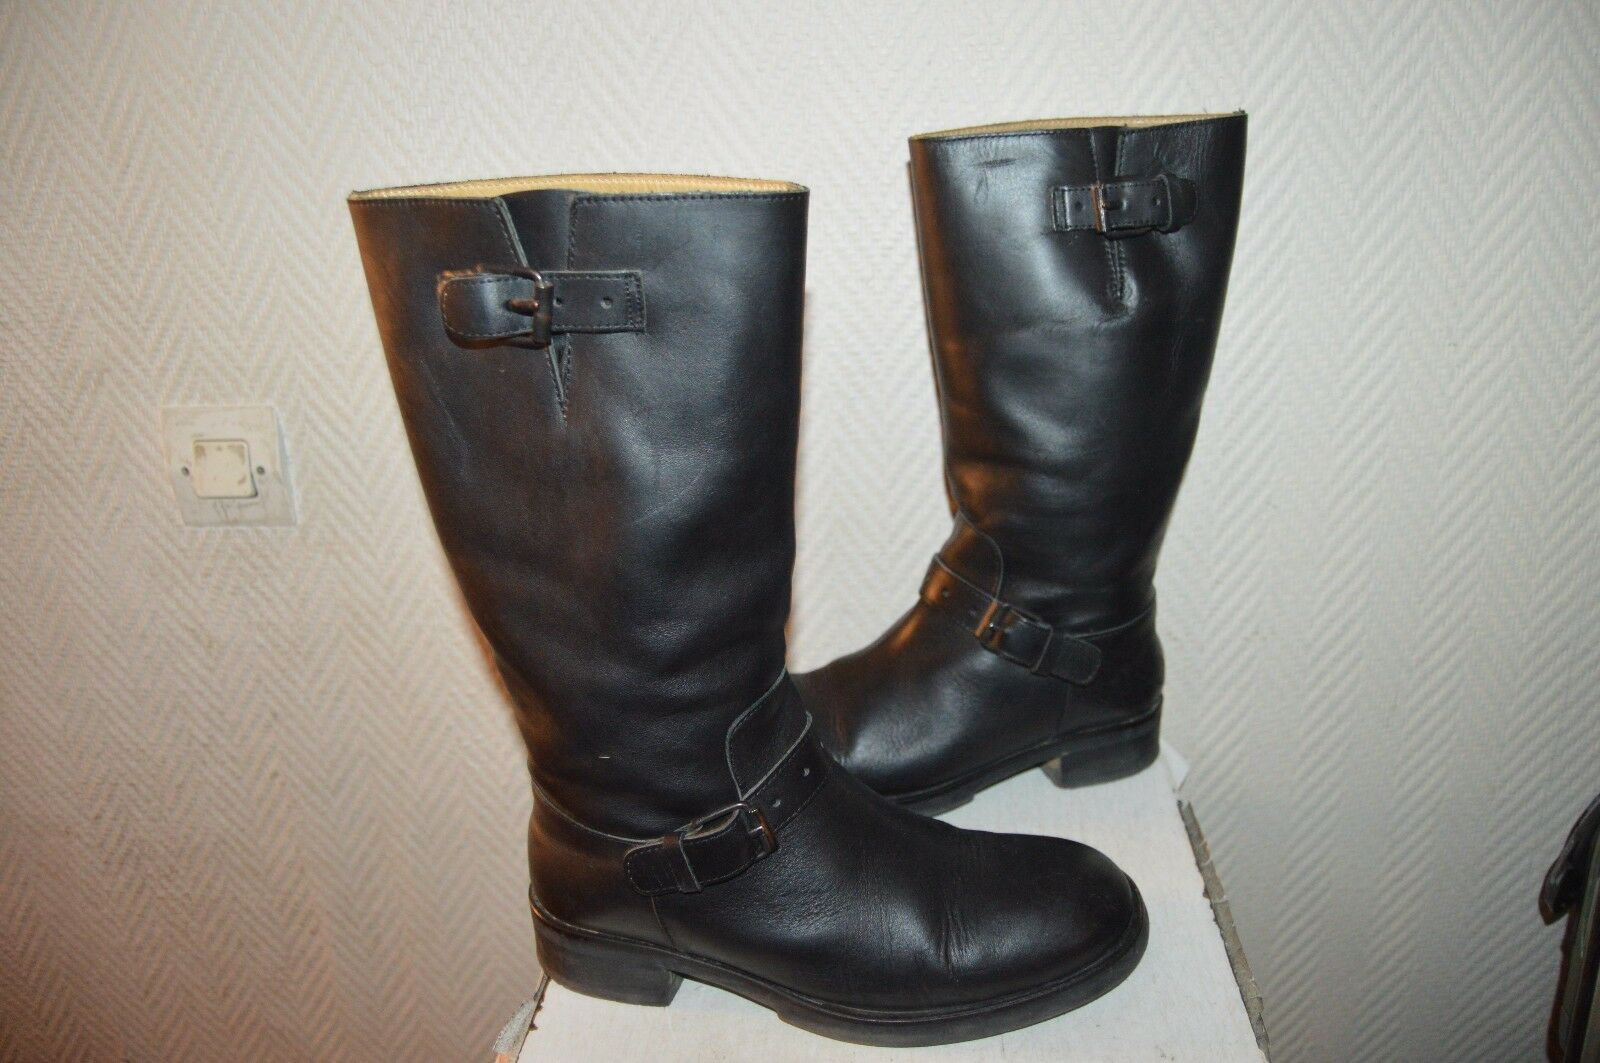 BOTTES CUIR  MOSQUITOS  TAILLE 38,5 RANGERS LEATHER bottes bottes bottes BE UK 5